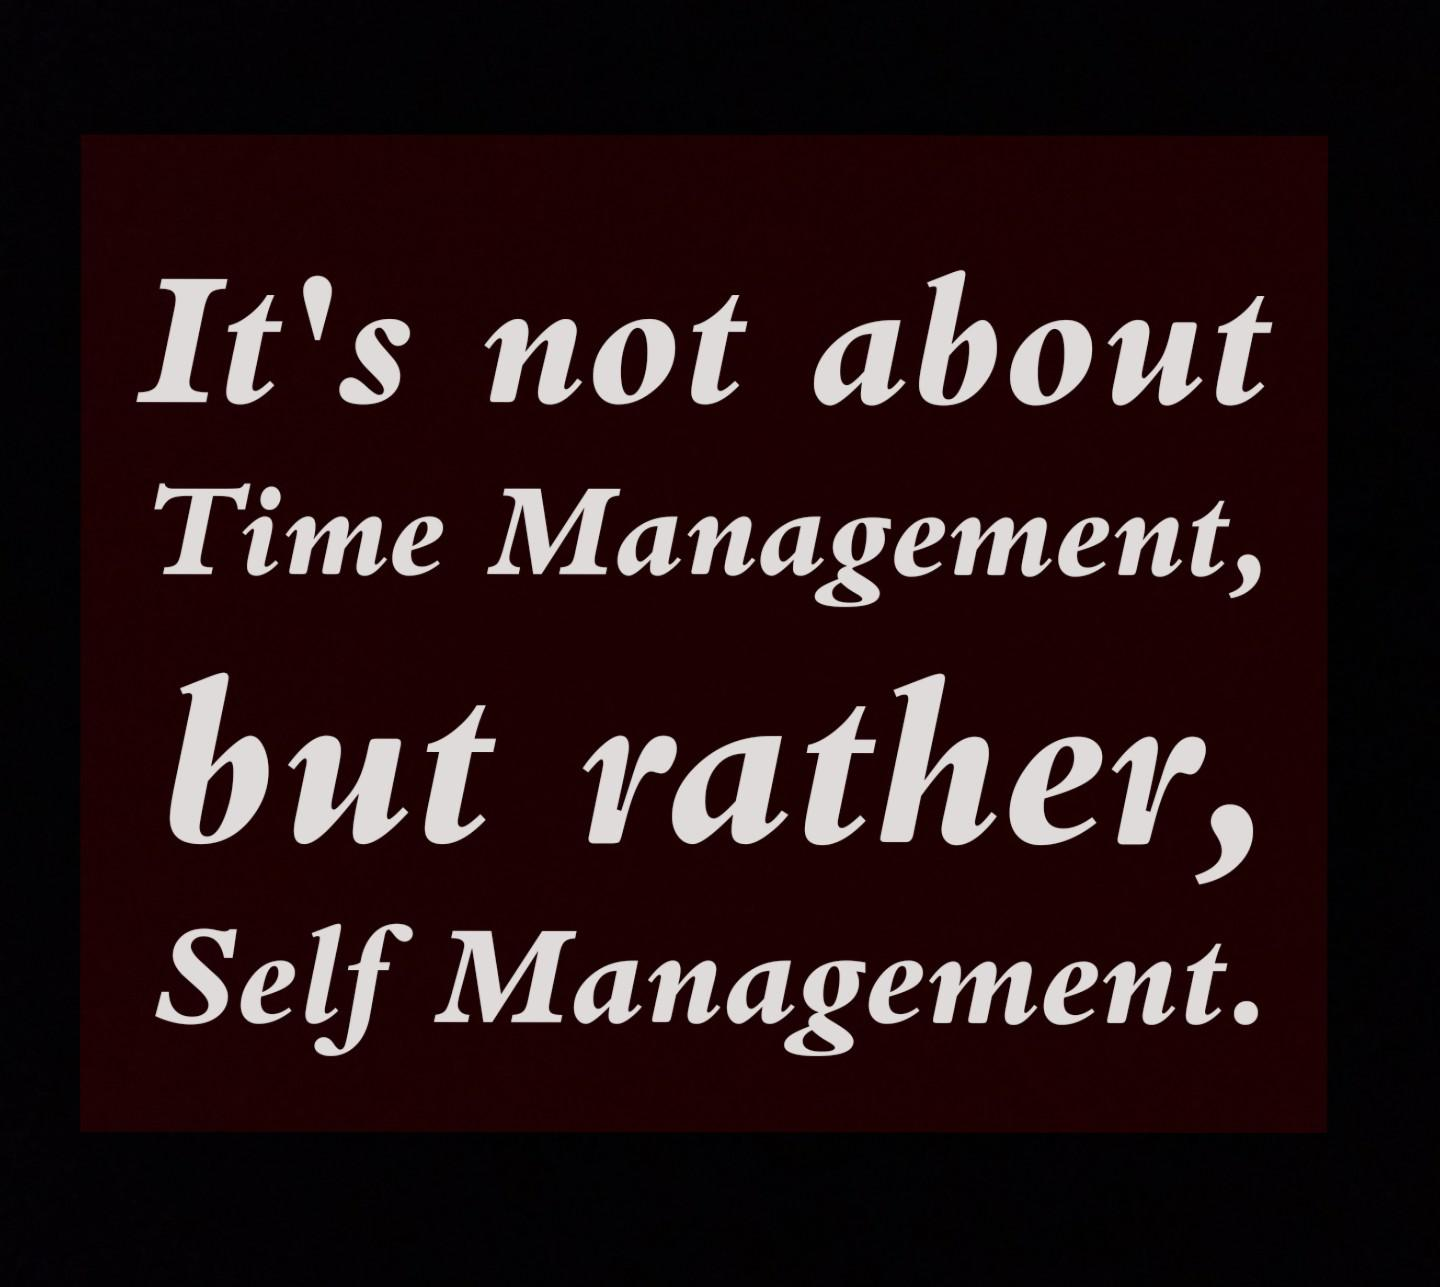 [image] Self management rather than Time management.